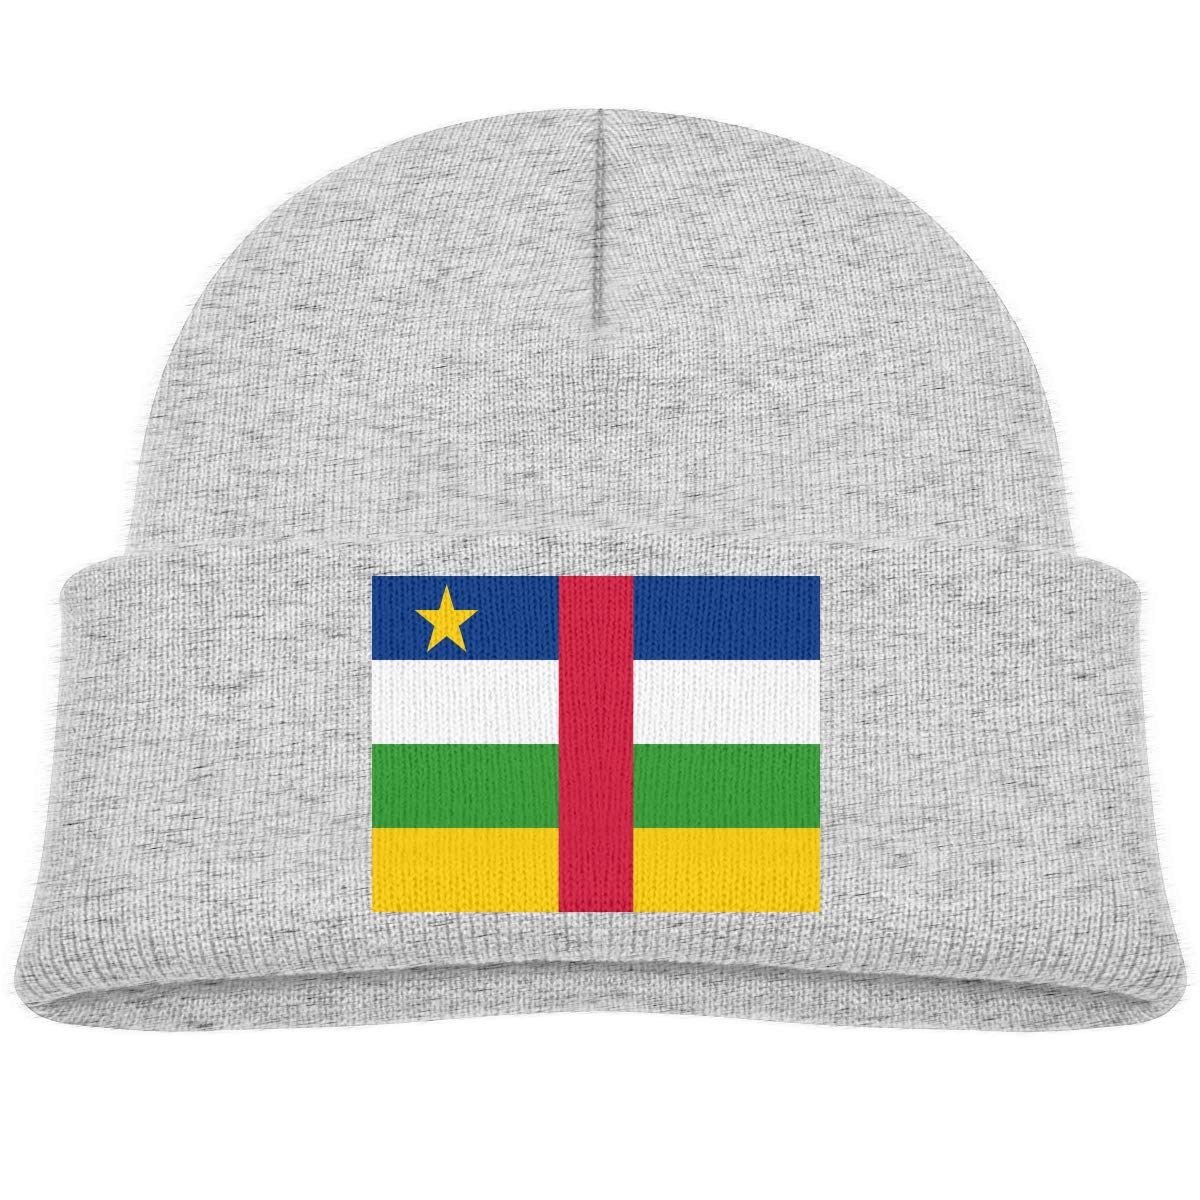 Amazon.com  Kids Funny Central African Flag Beanie Hats Warm Adjustable  Caps for Boys and Girls  Clothing 8688b9f6c81